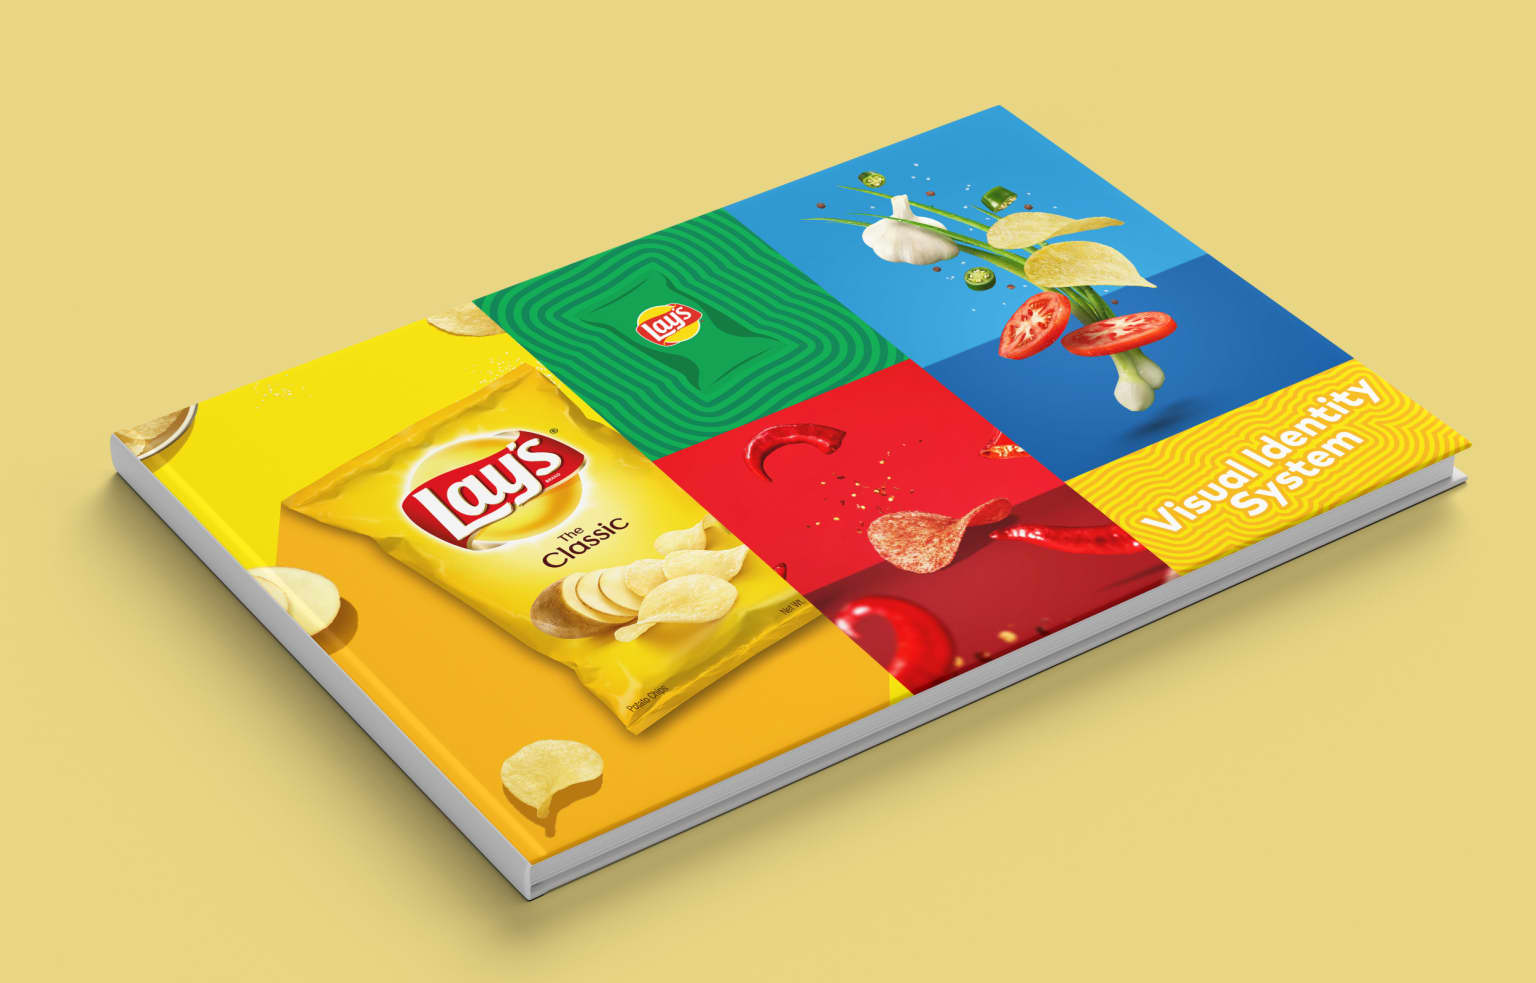 Lays Global Visual Identity System